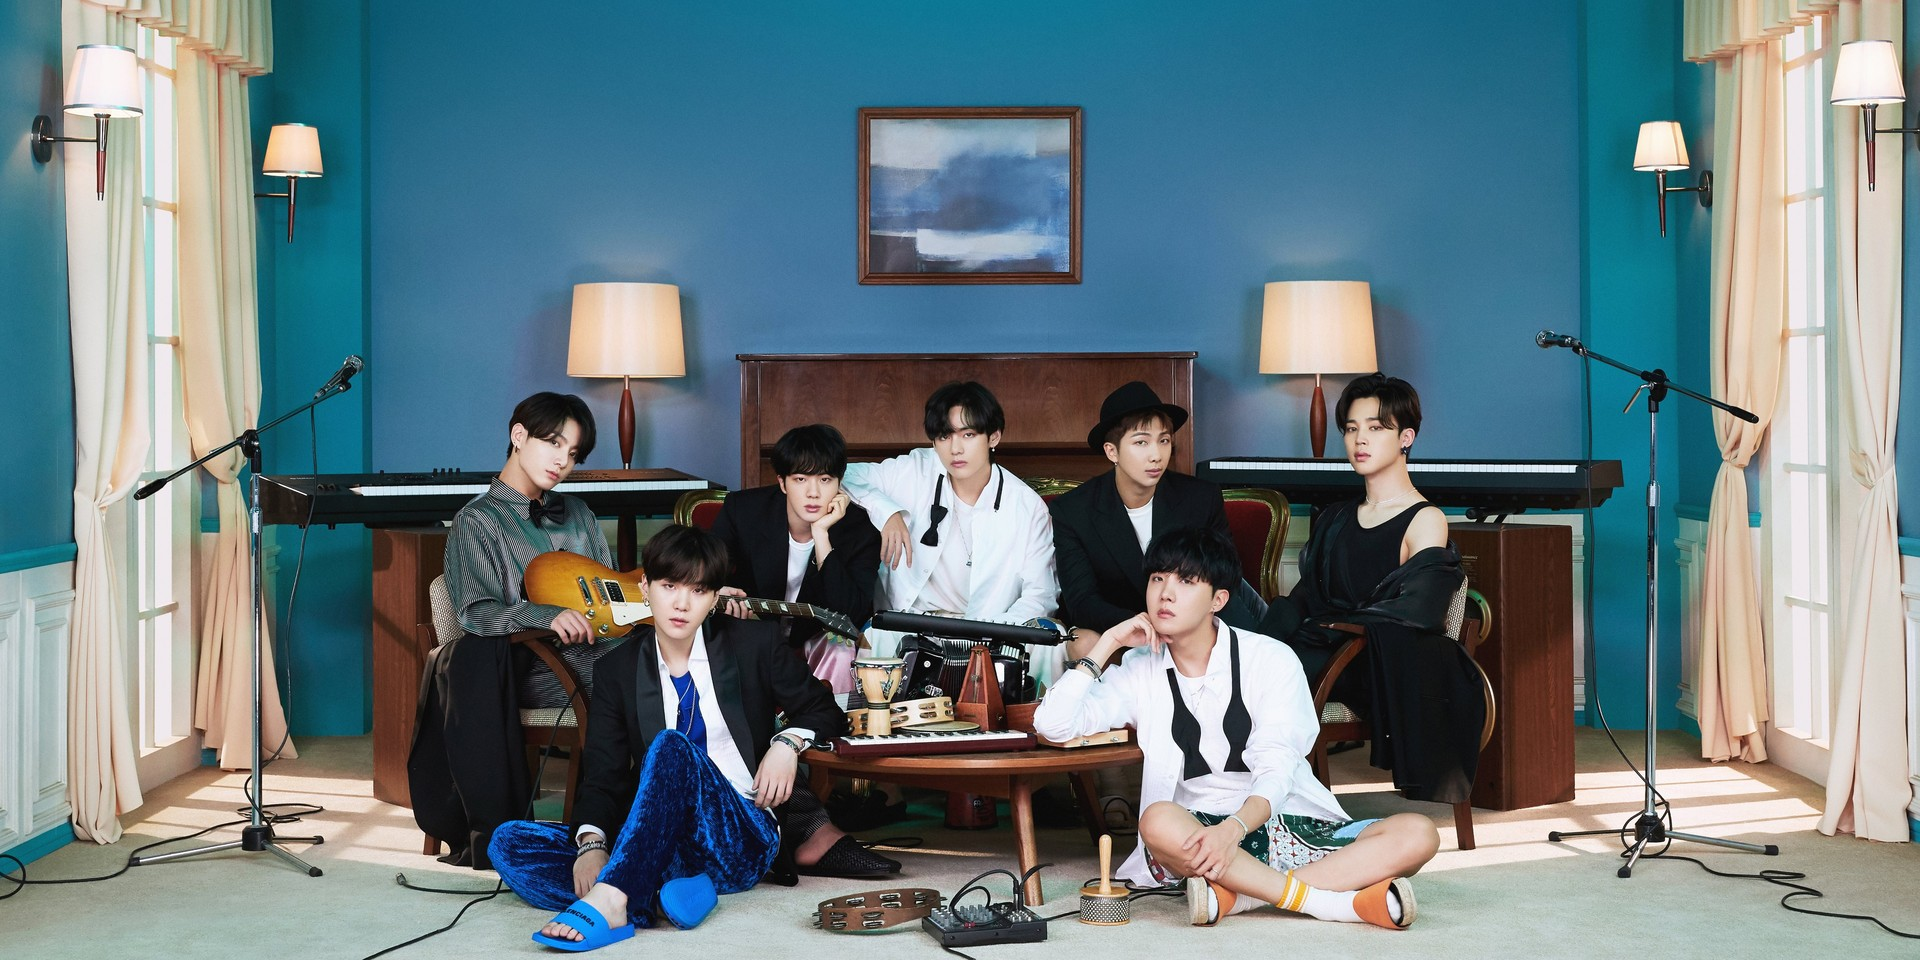 Like an old friend, BTS' BE brings comfort in the simplest way: through music and encouraging words – album review